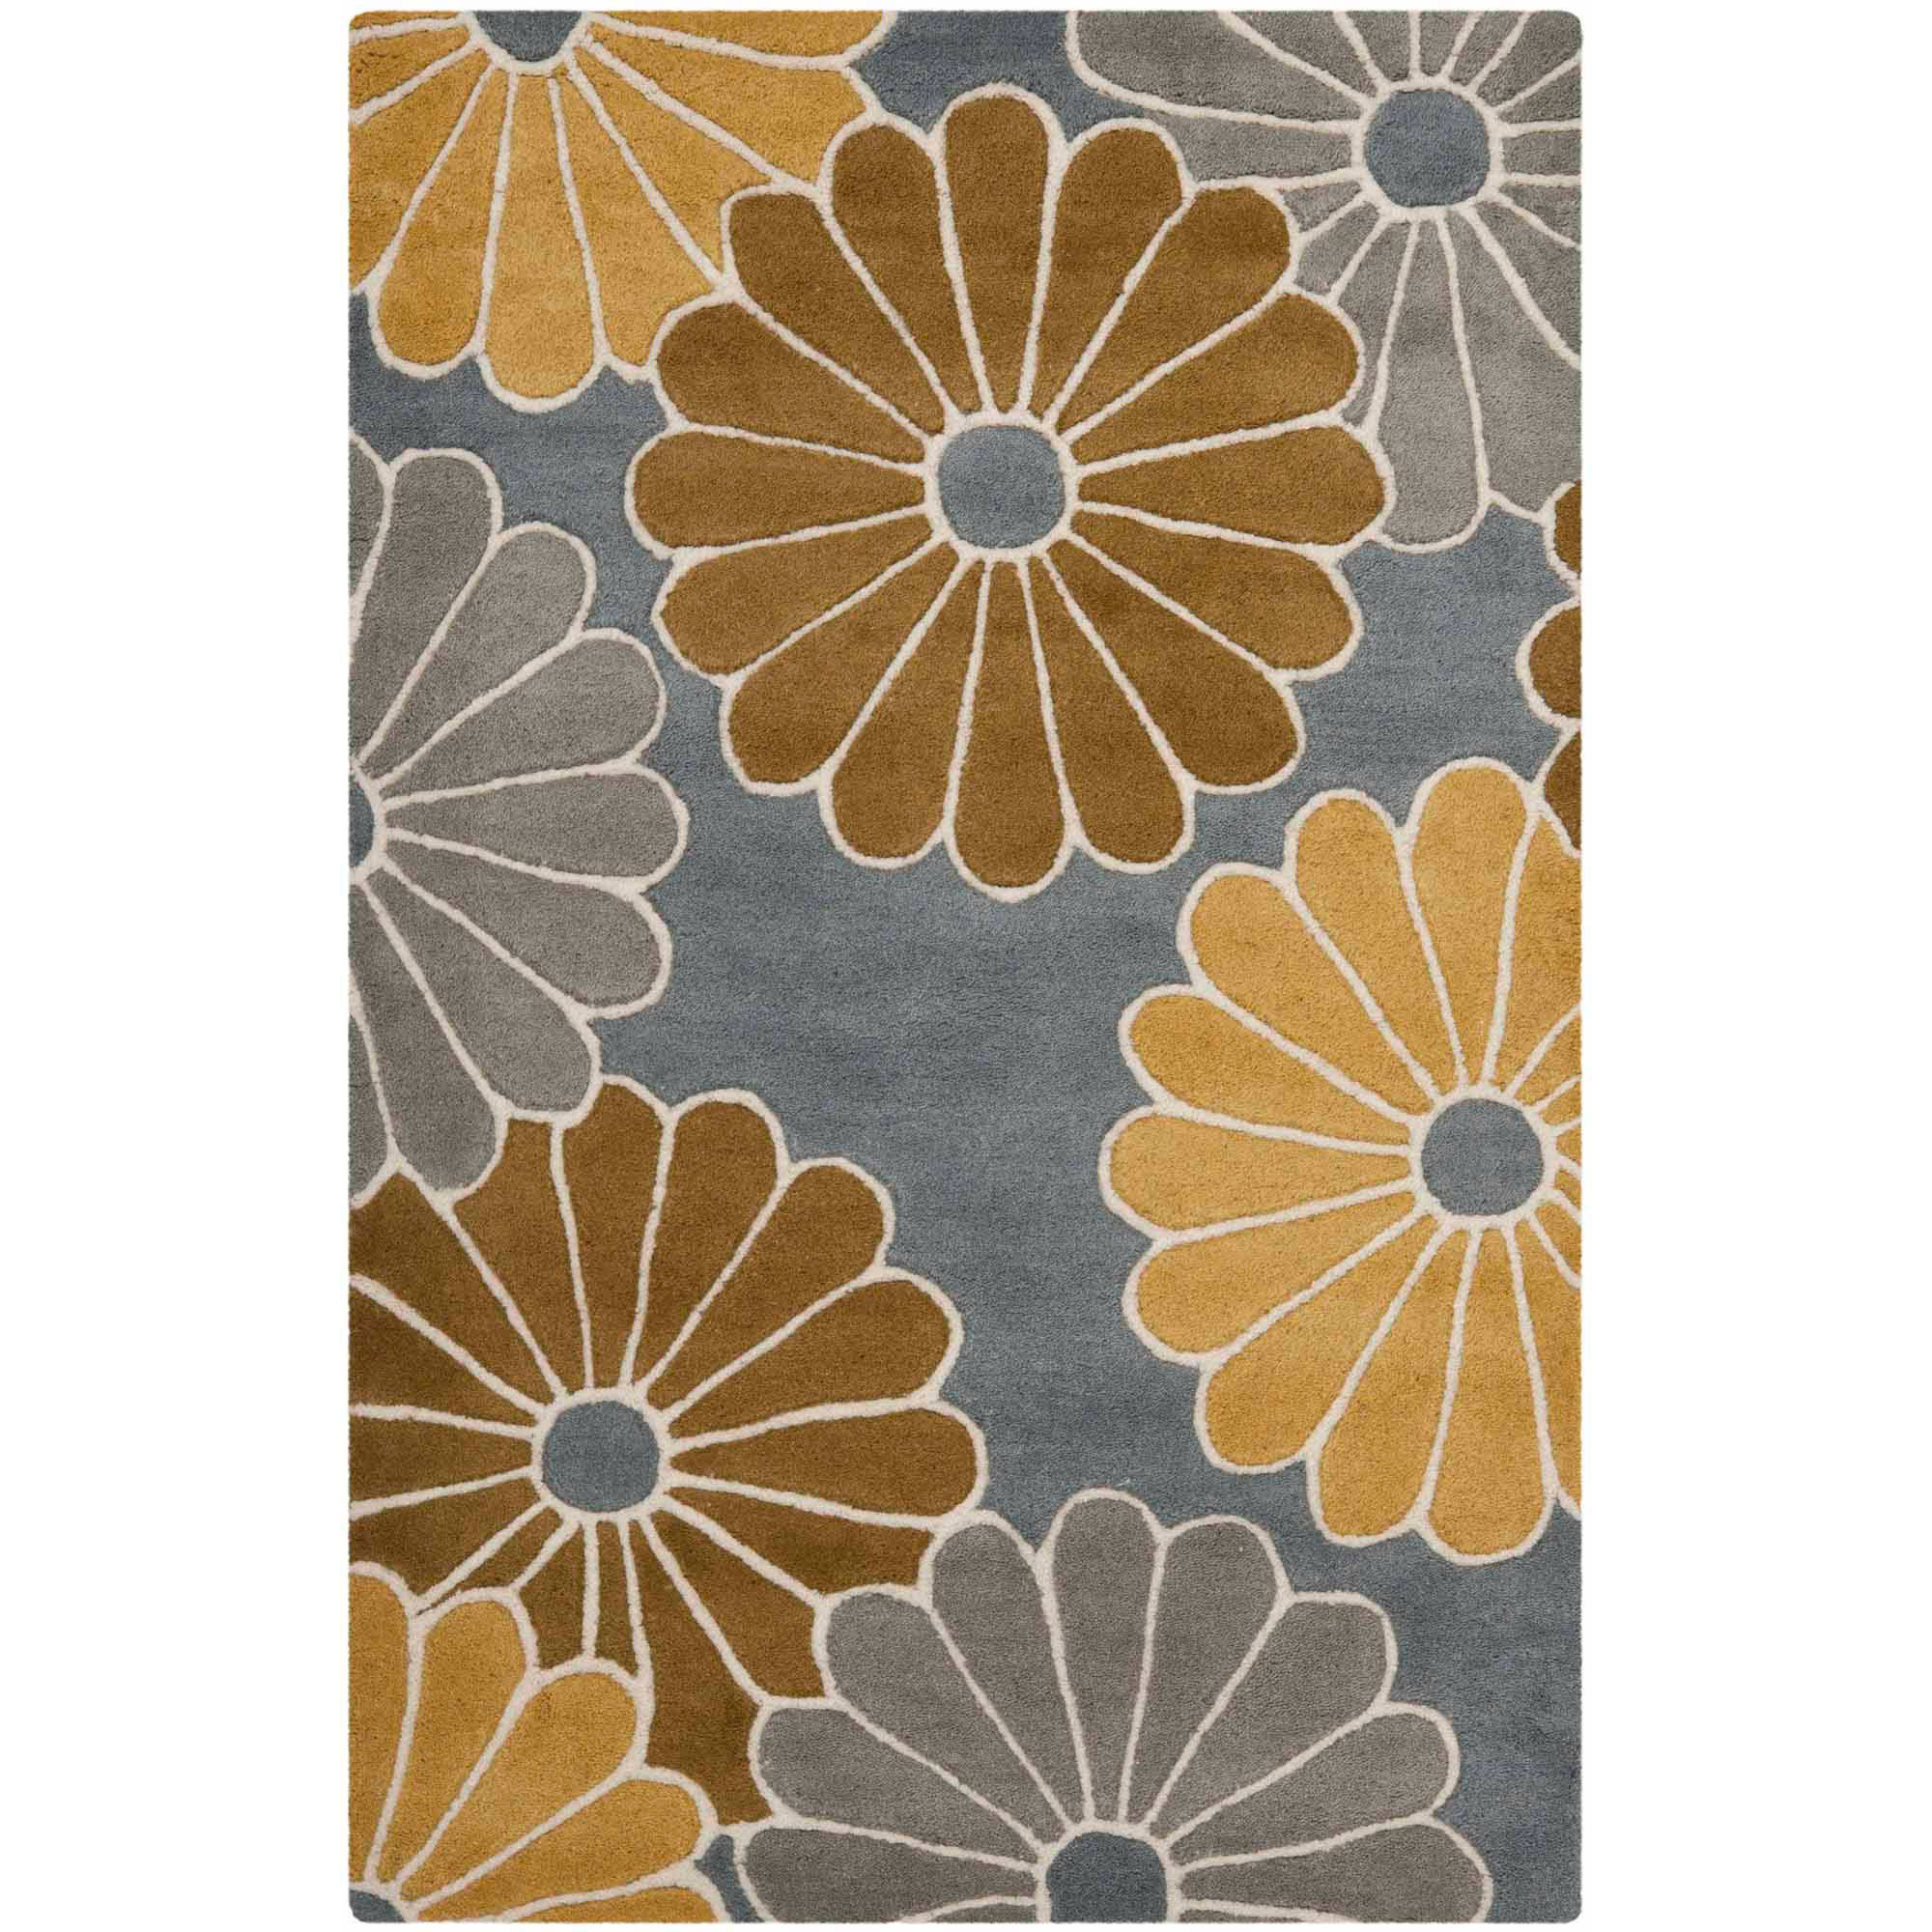 Safavieh Soho Deven Floral Area Rug or Runner